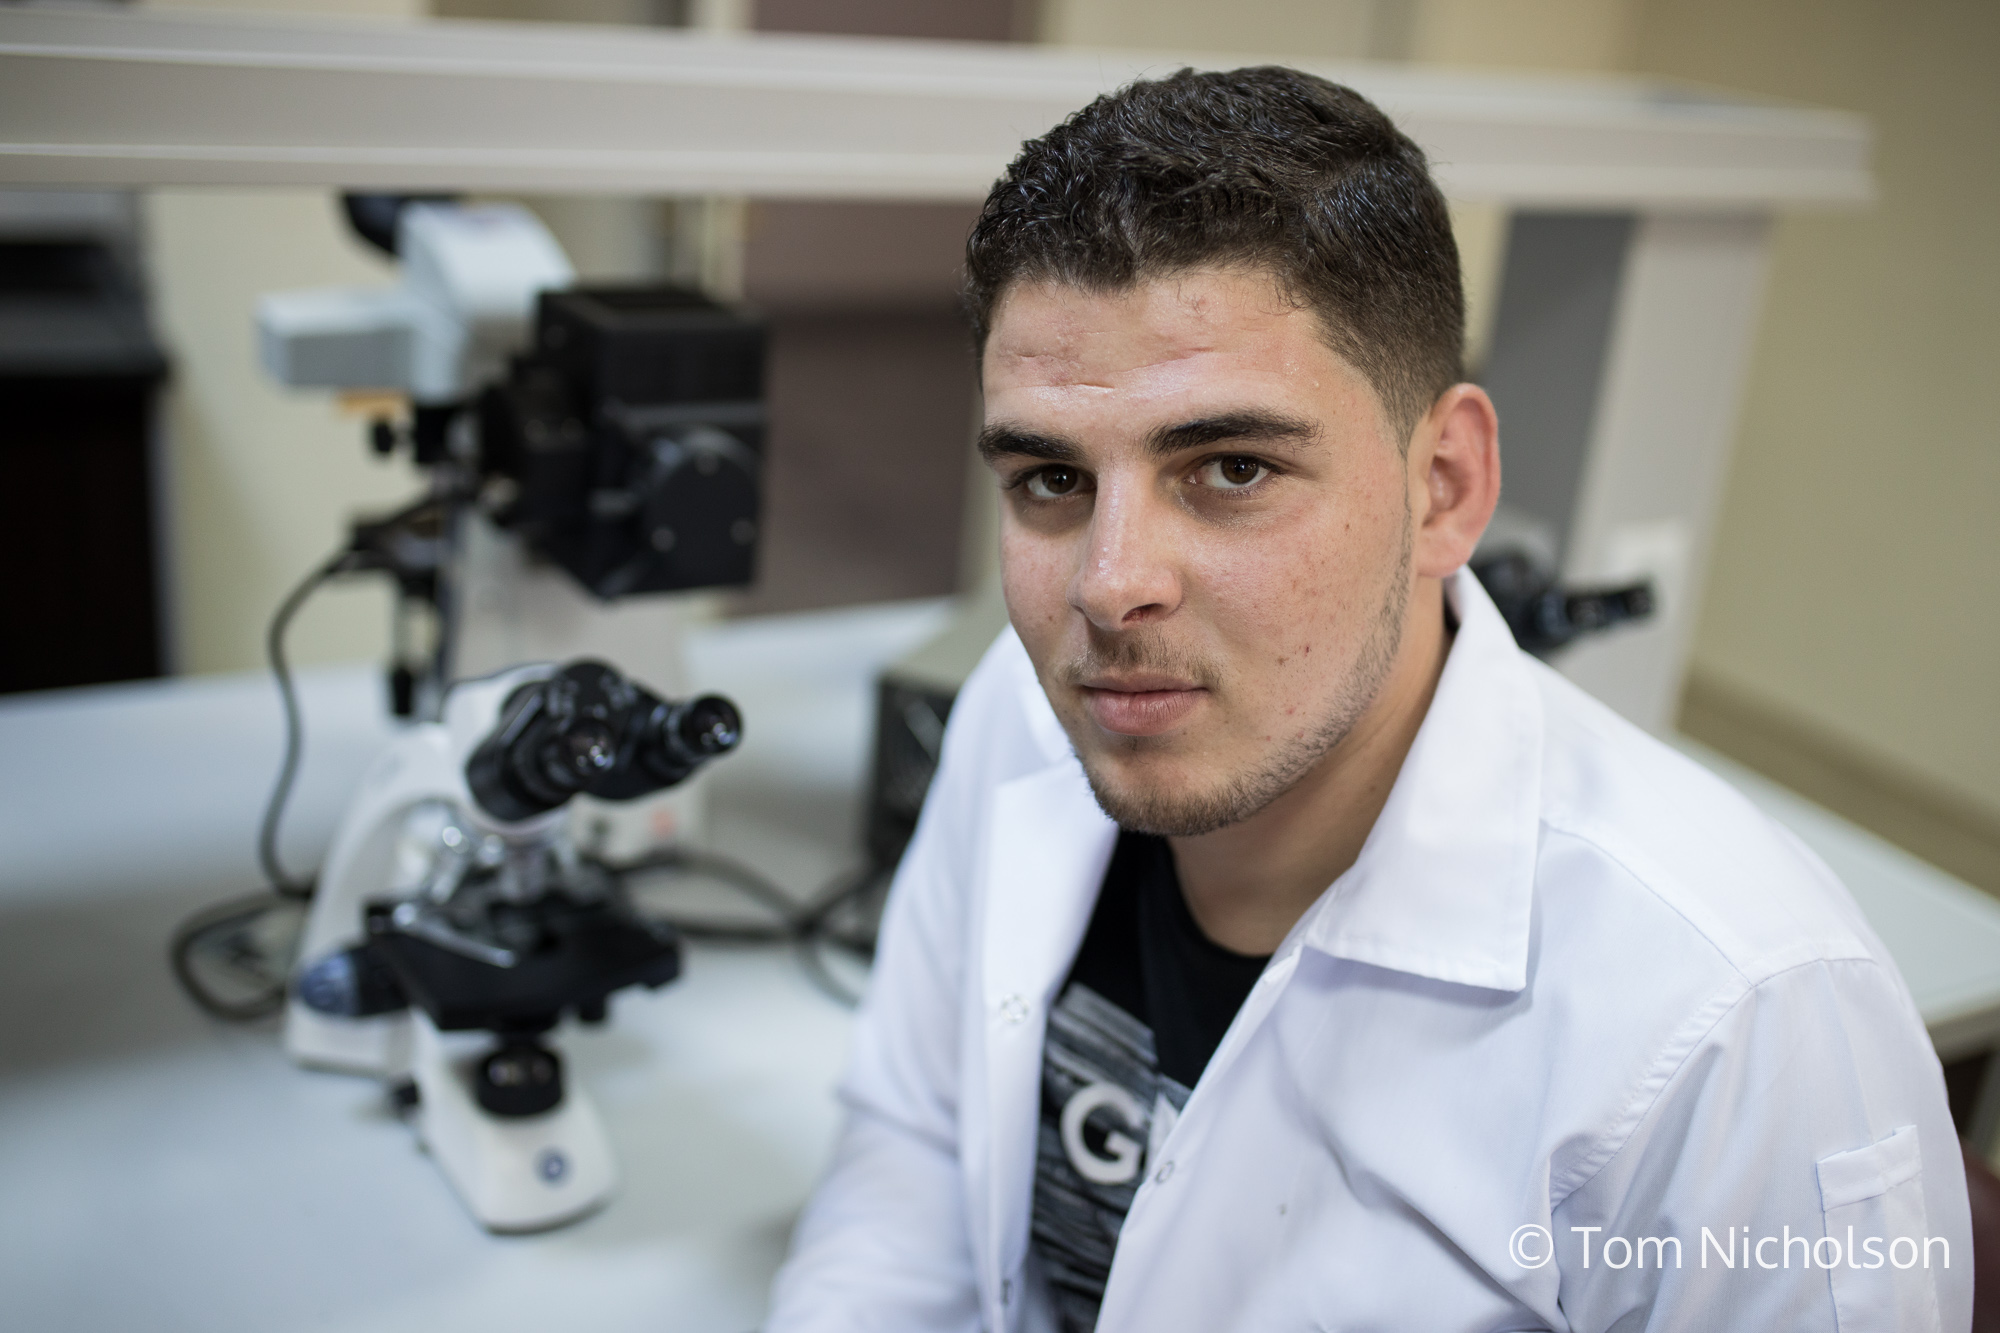 """©2018 Tom Nicholson. 02/07/2018. Kahramanmaraş, Turkey. Abdulaziz Omar, 20, from Aleppo, Syria, is studying Laboratory Analysis at at at Sütçü Imam University, Kaharamarmas. Abdulaziz's friend was injured in the war, and the village he was from had no doctors. He """"witnessed a lot of pain, blood and massacres in Syria"""", which lead to a dream to become a doctor, made possible by a SPARK scholarship. Abdulaziz wants to help people, and believes things will get better. He is open to the idea of returning to Syria despite the stigma attached to people who left and then returned."""